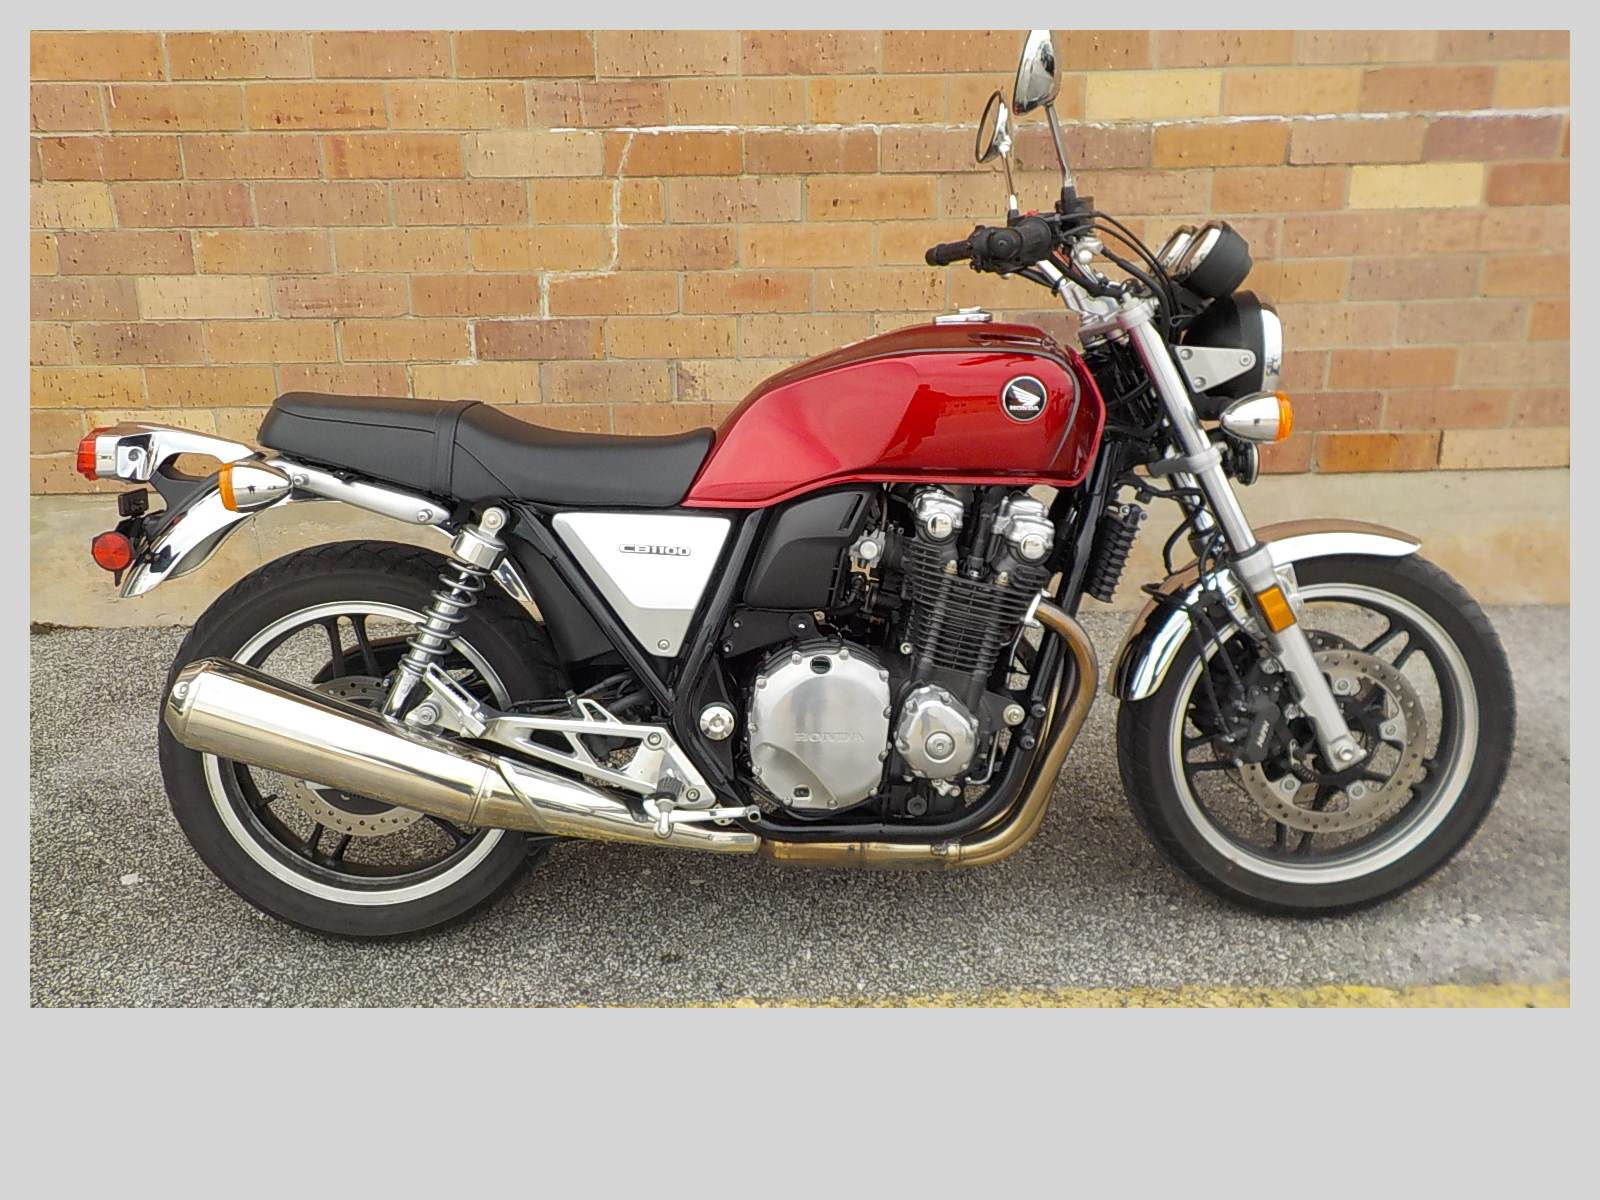 2013 Honda CB1100 ABS for sale 34577